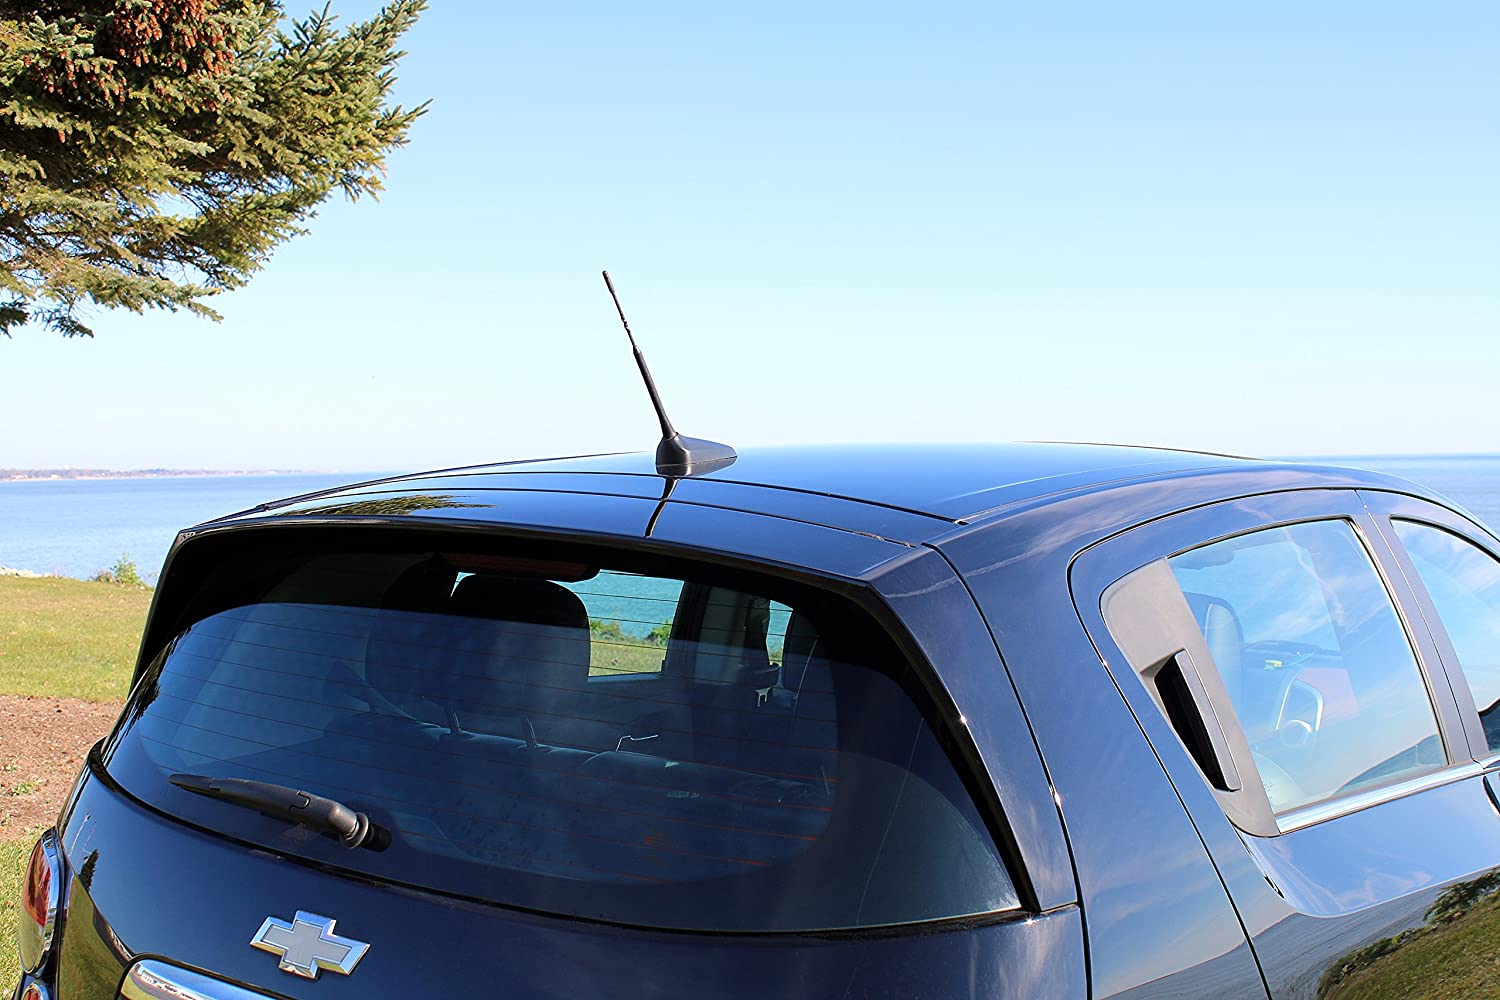 2008 8 Screw-On Antenna is Compatible with Dodge Charger AntennaMastsRus